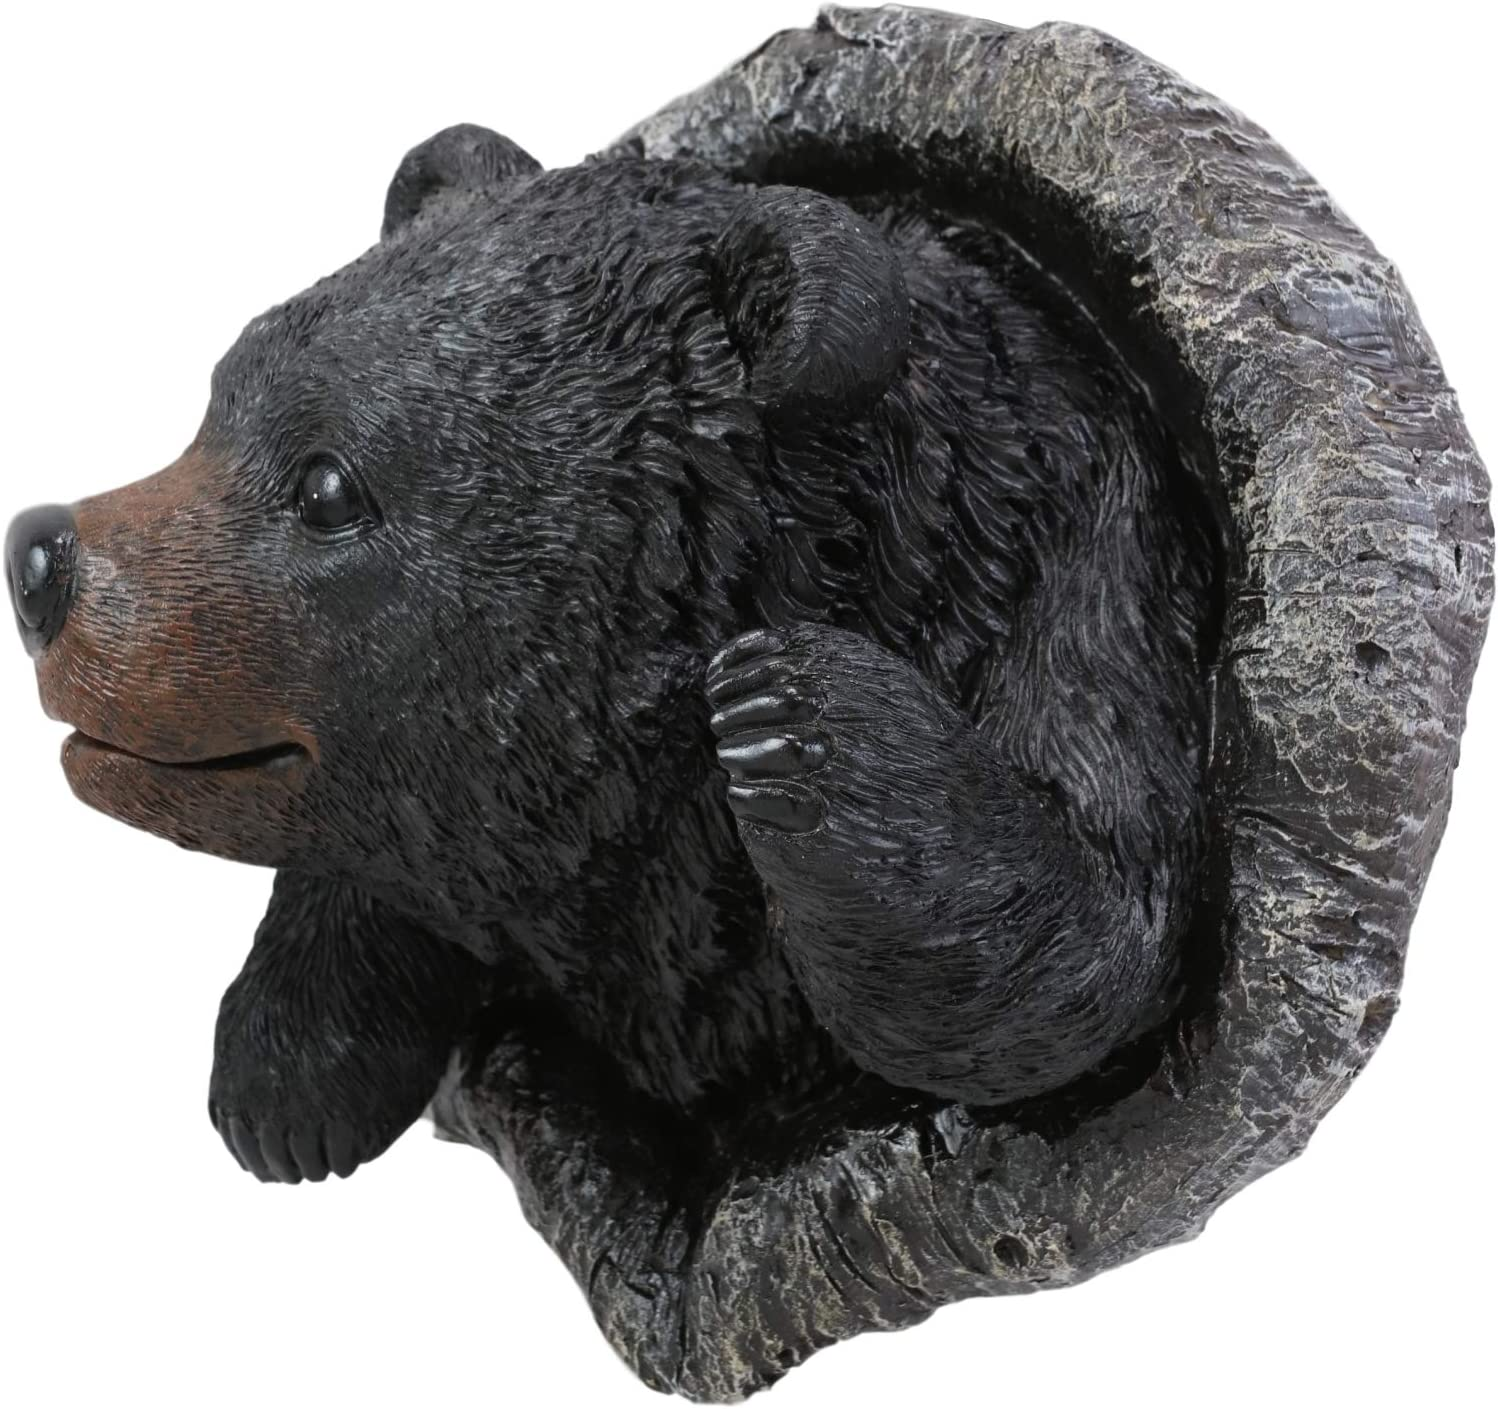 Amazon Com Ebros Gift 9 Tall Western Hello Black Bear Waving Paw Tree Bark Or Wall Hanging Decor Plaque Southwest Rustic Country Bears Vintage Decorative Accent For Walls Or Trees Everything Else